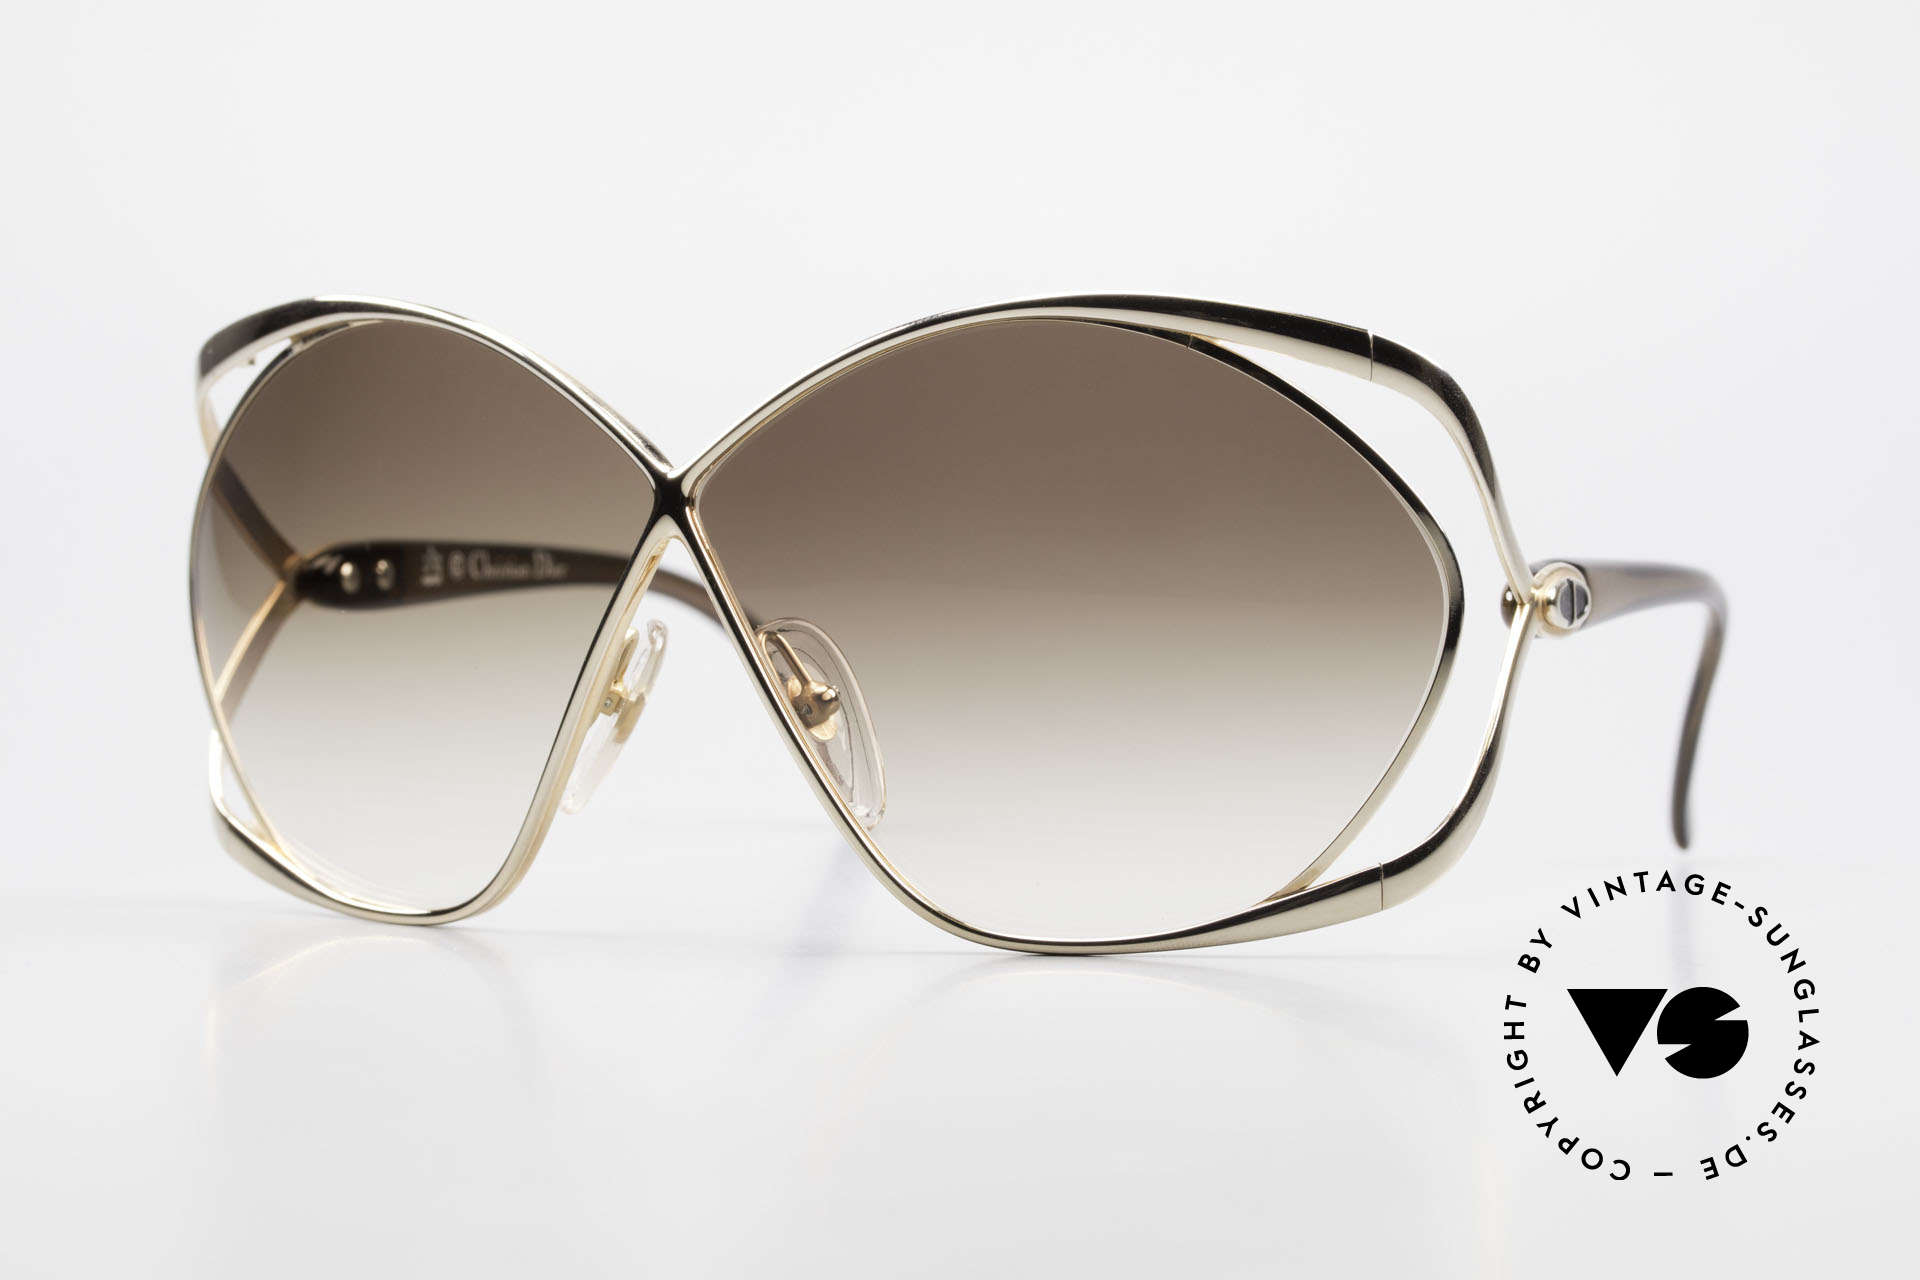 Christian Dior 2056 Butterfly 80's Sunglasses, glamorous designer sunglasses by CHRISTIAN DIOR, Made for Women